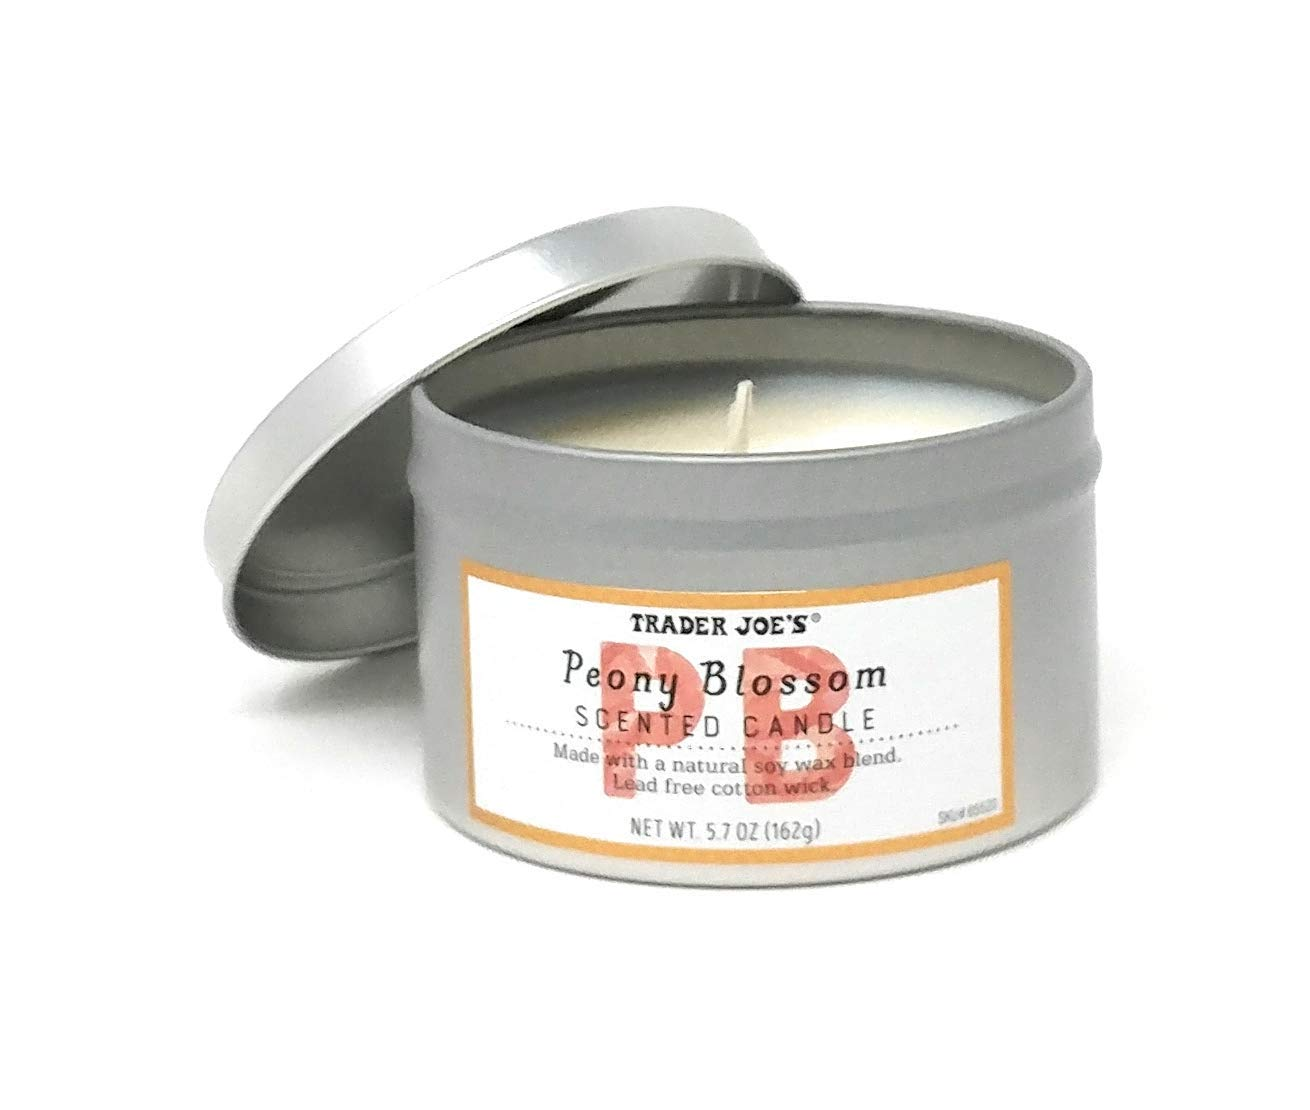 Trader Joes Peony Blossom Scented Candle Soy Wax Lead Free Wick 5.7 oz (1)